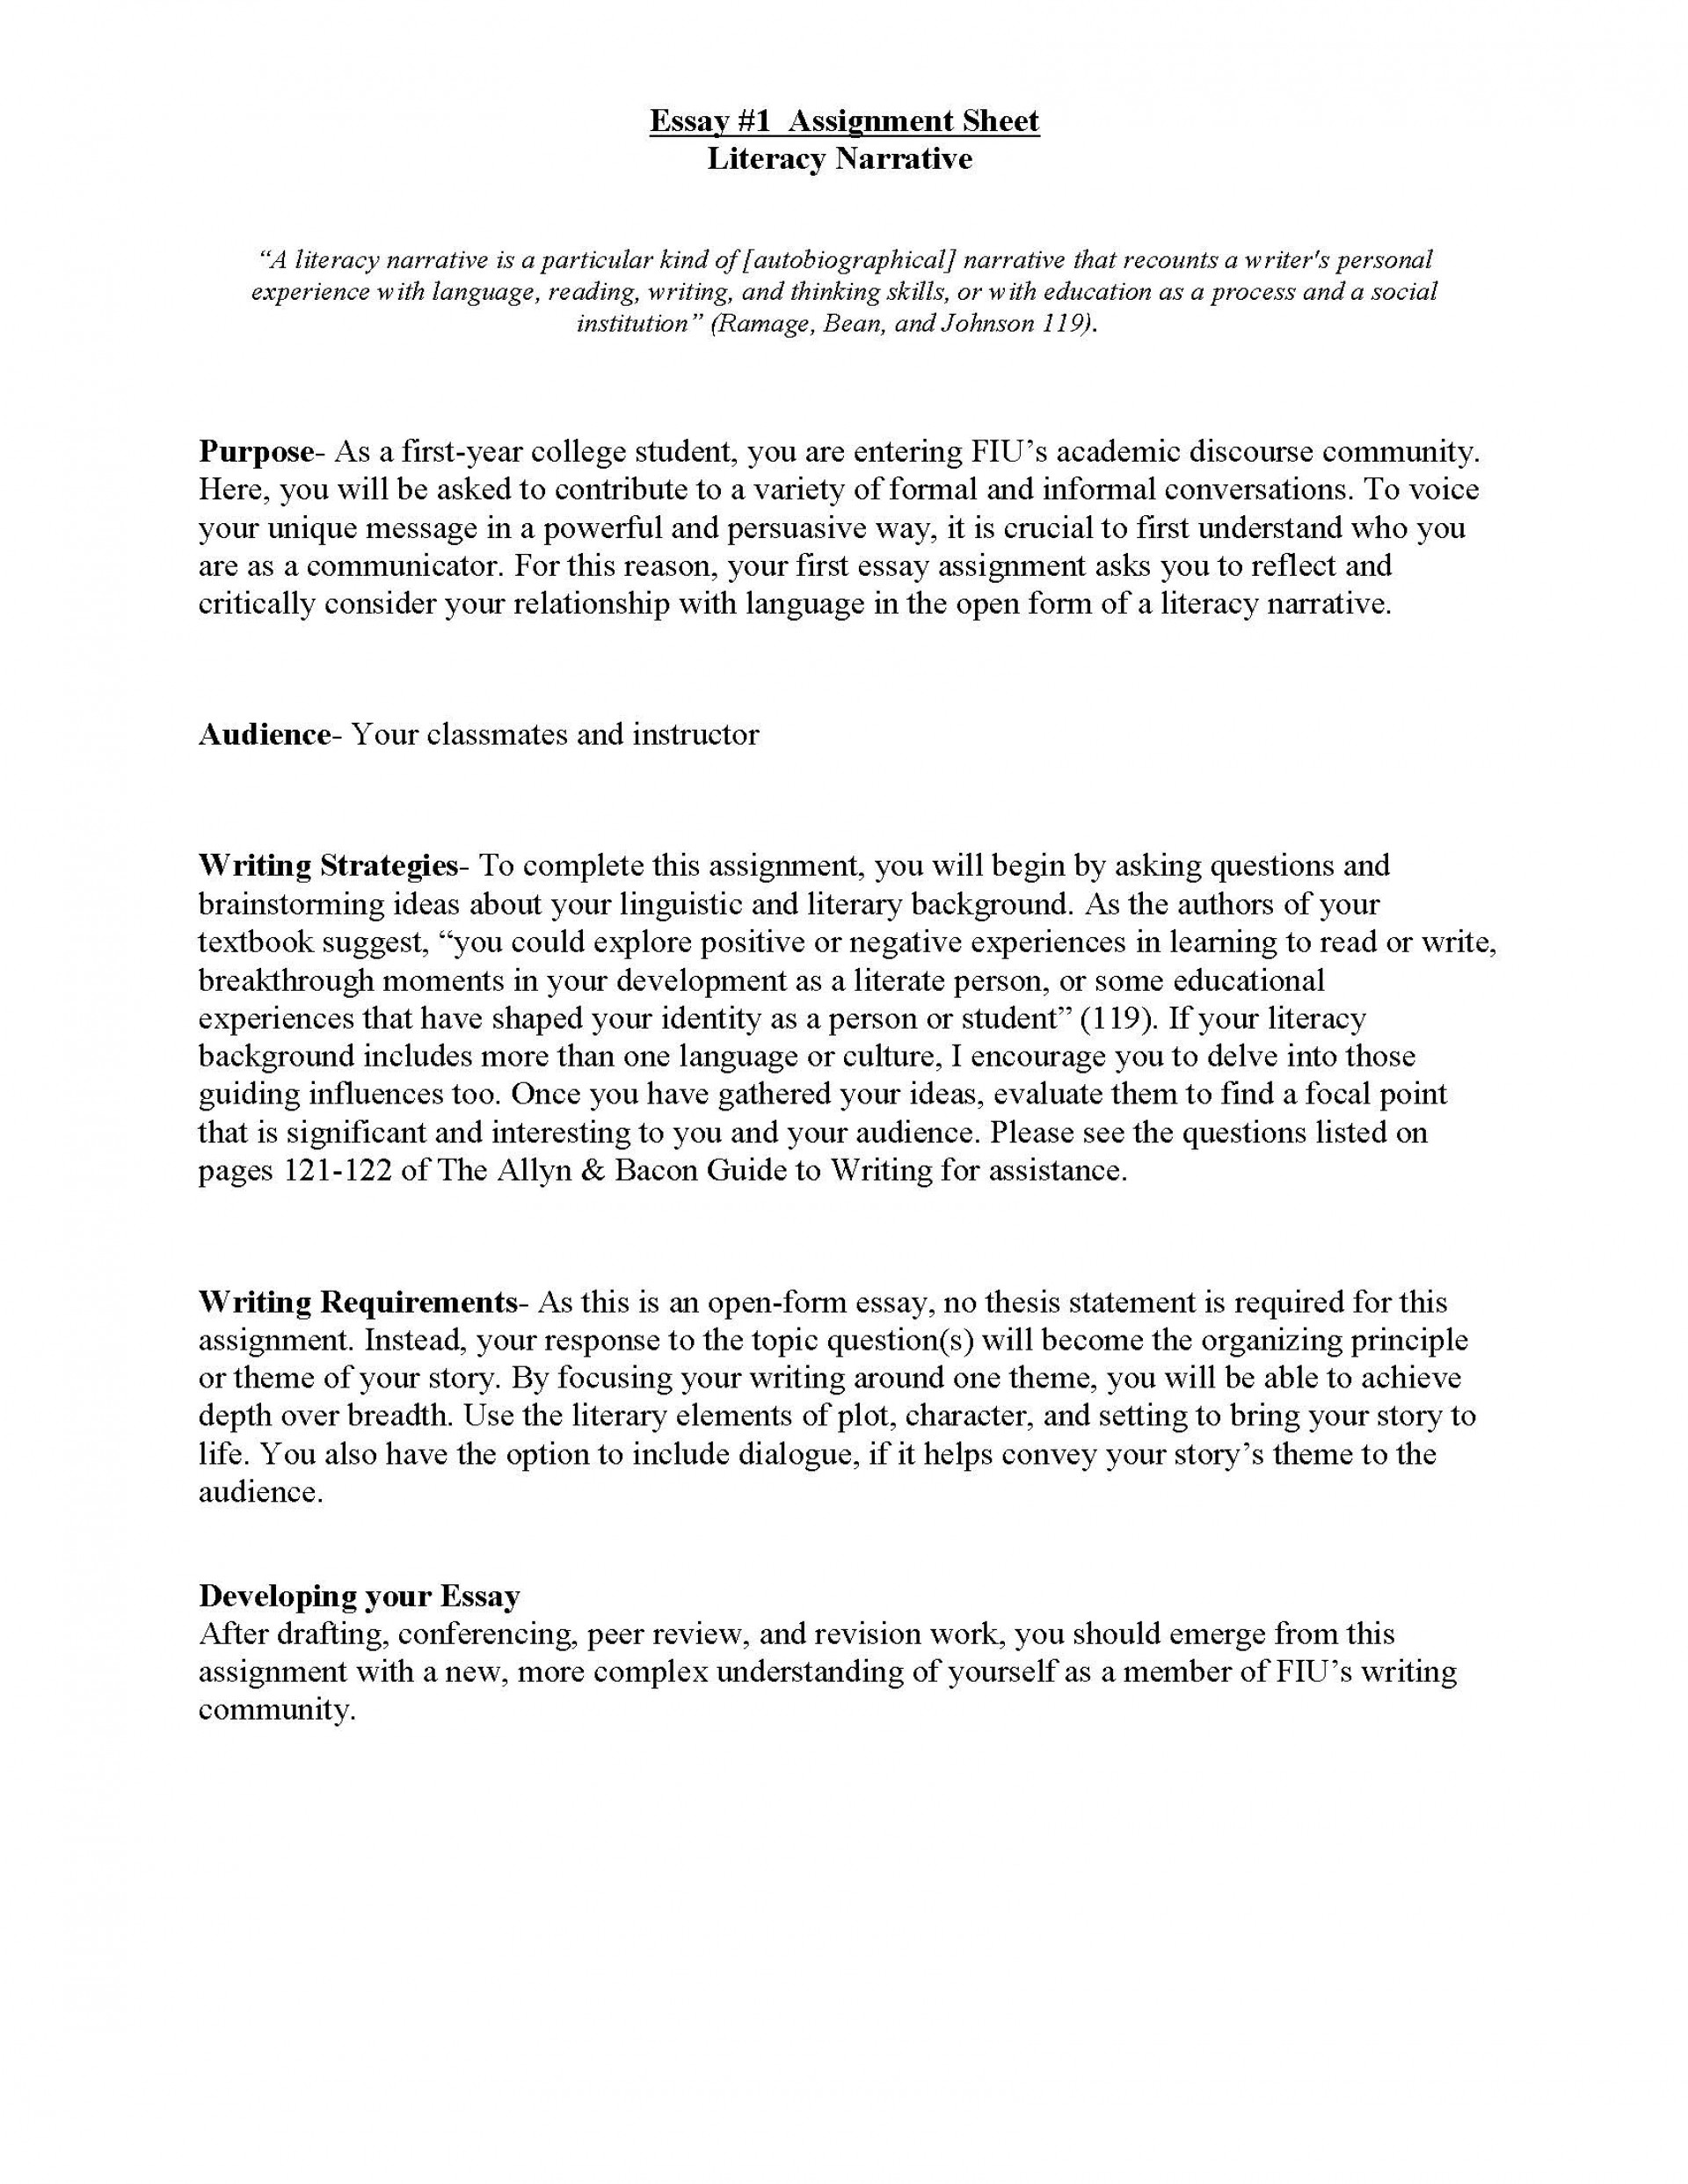 017 Literacy Narrative Unit Assignment Spring 2012 Page 1s Of Essays Essay Rare Examples Personal For High School Example About Experience Pdf Composition Topics 1920